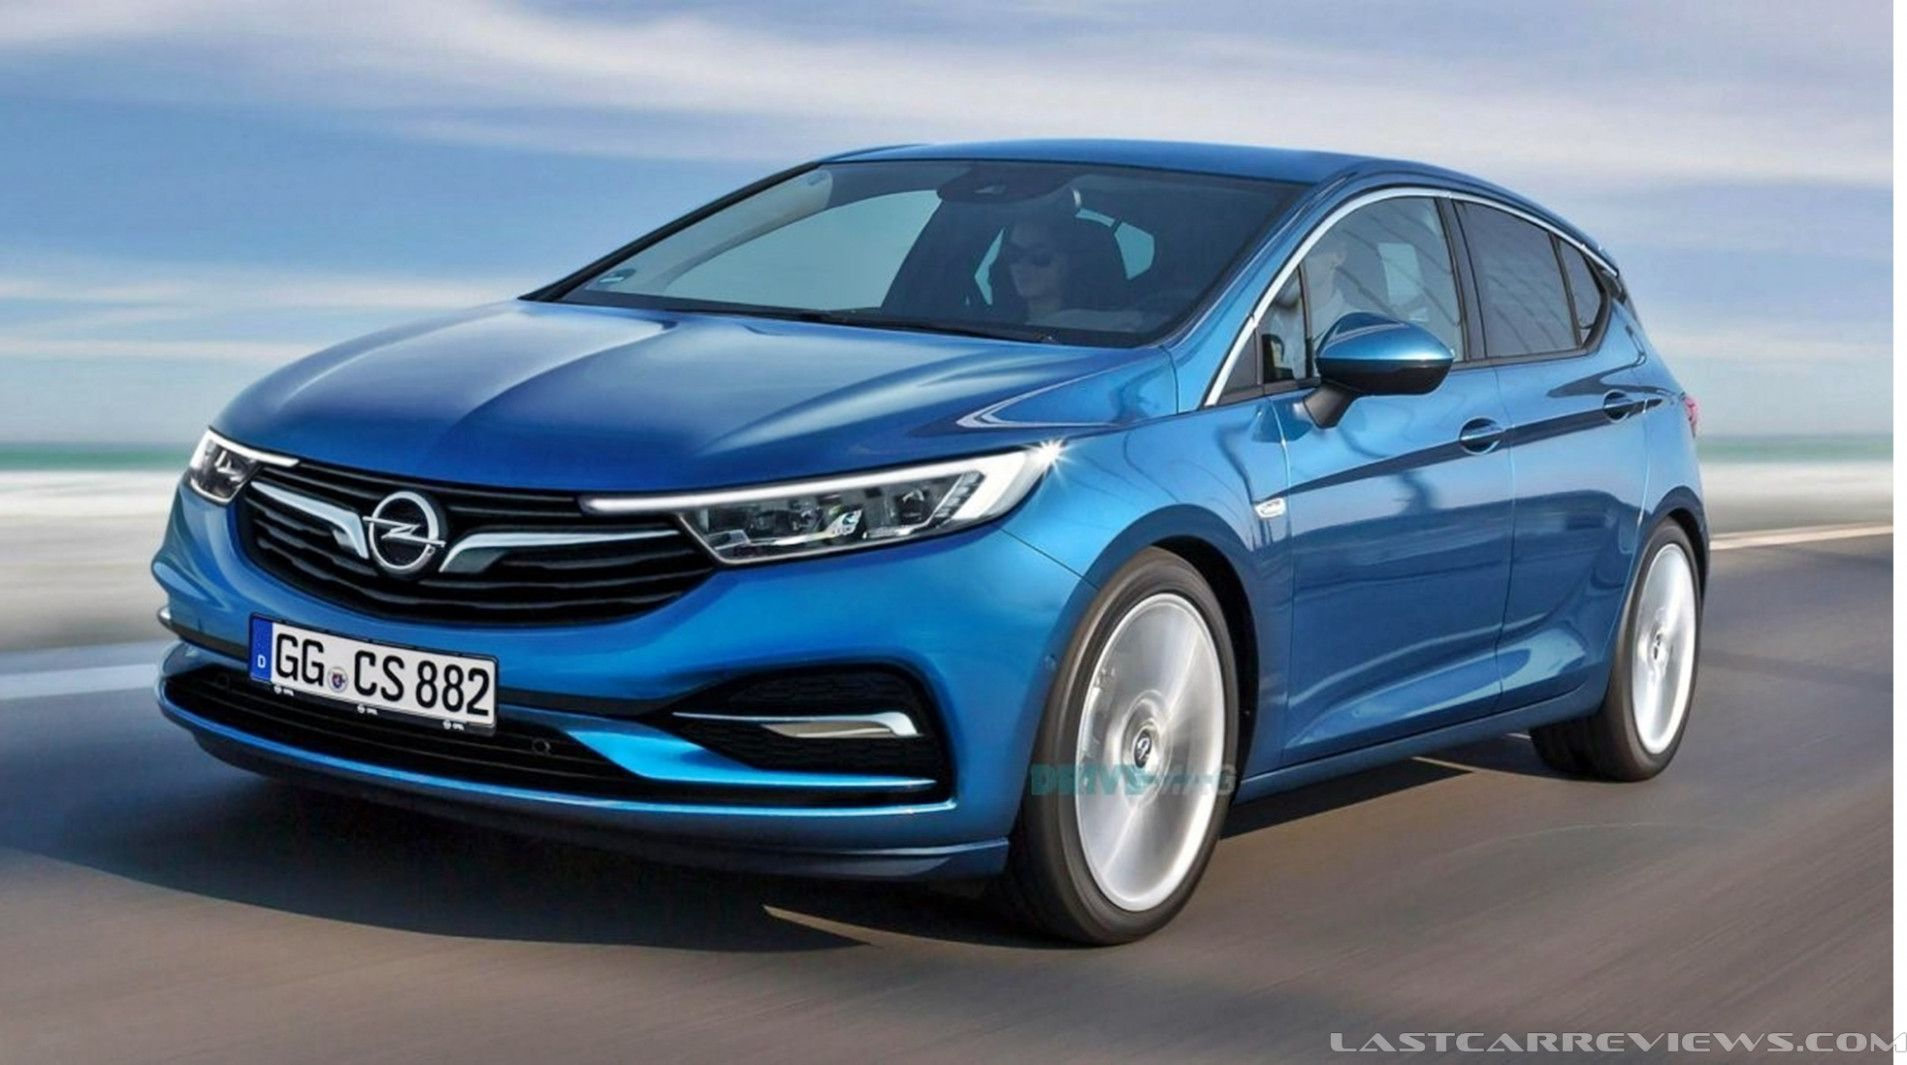 6 Picture Opel Astra 2020 Price In 2020 Opel Car Car Review